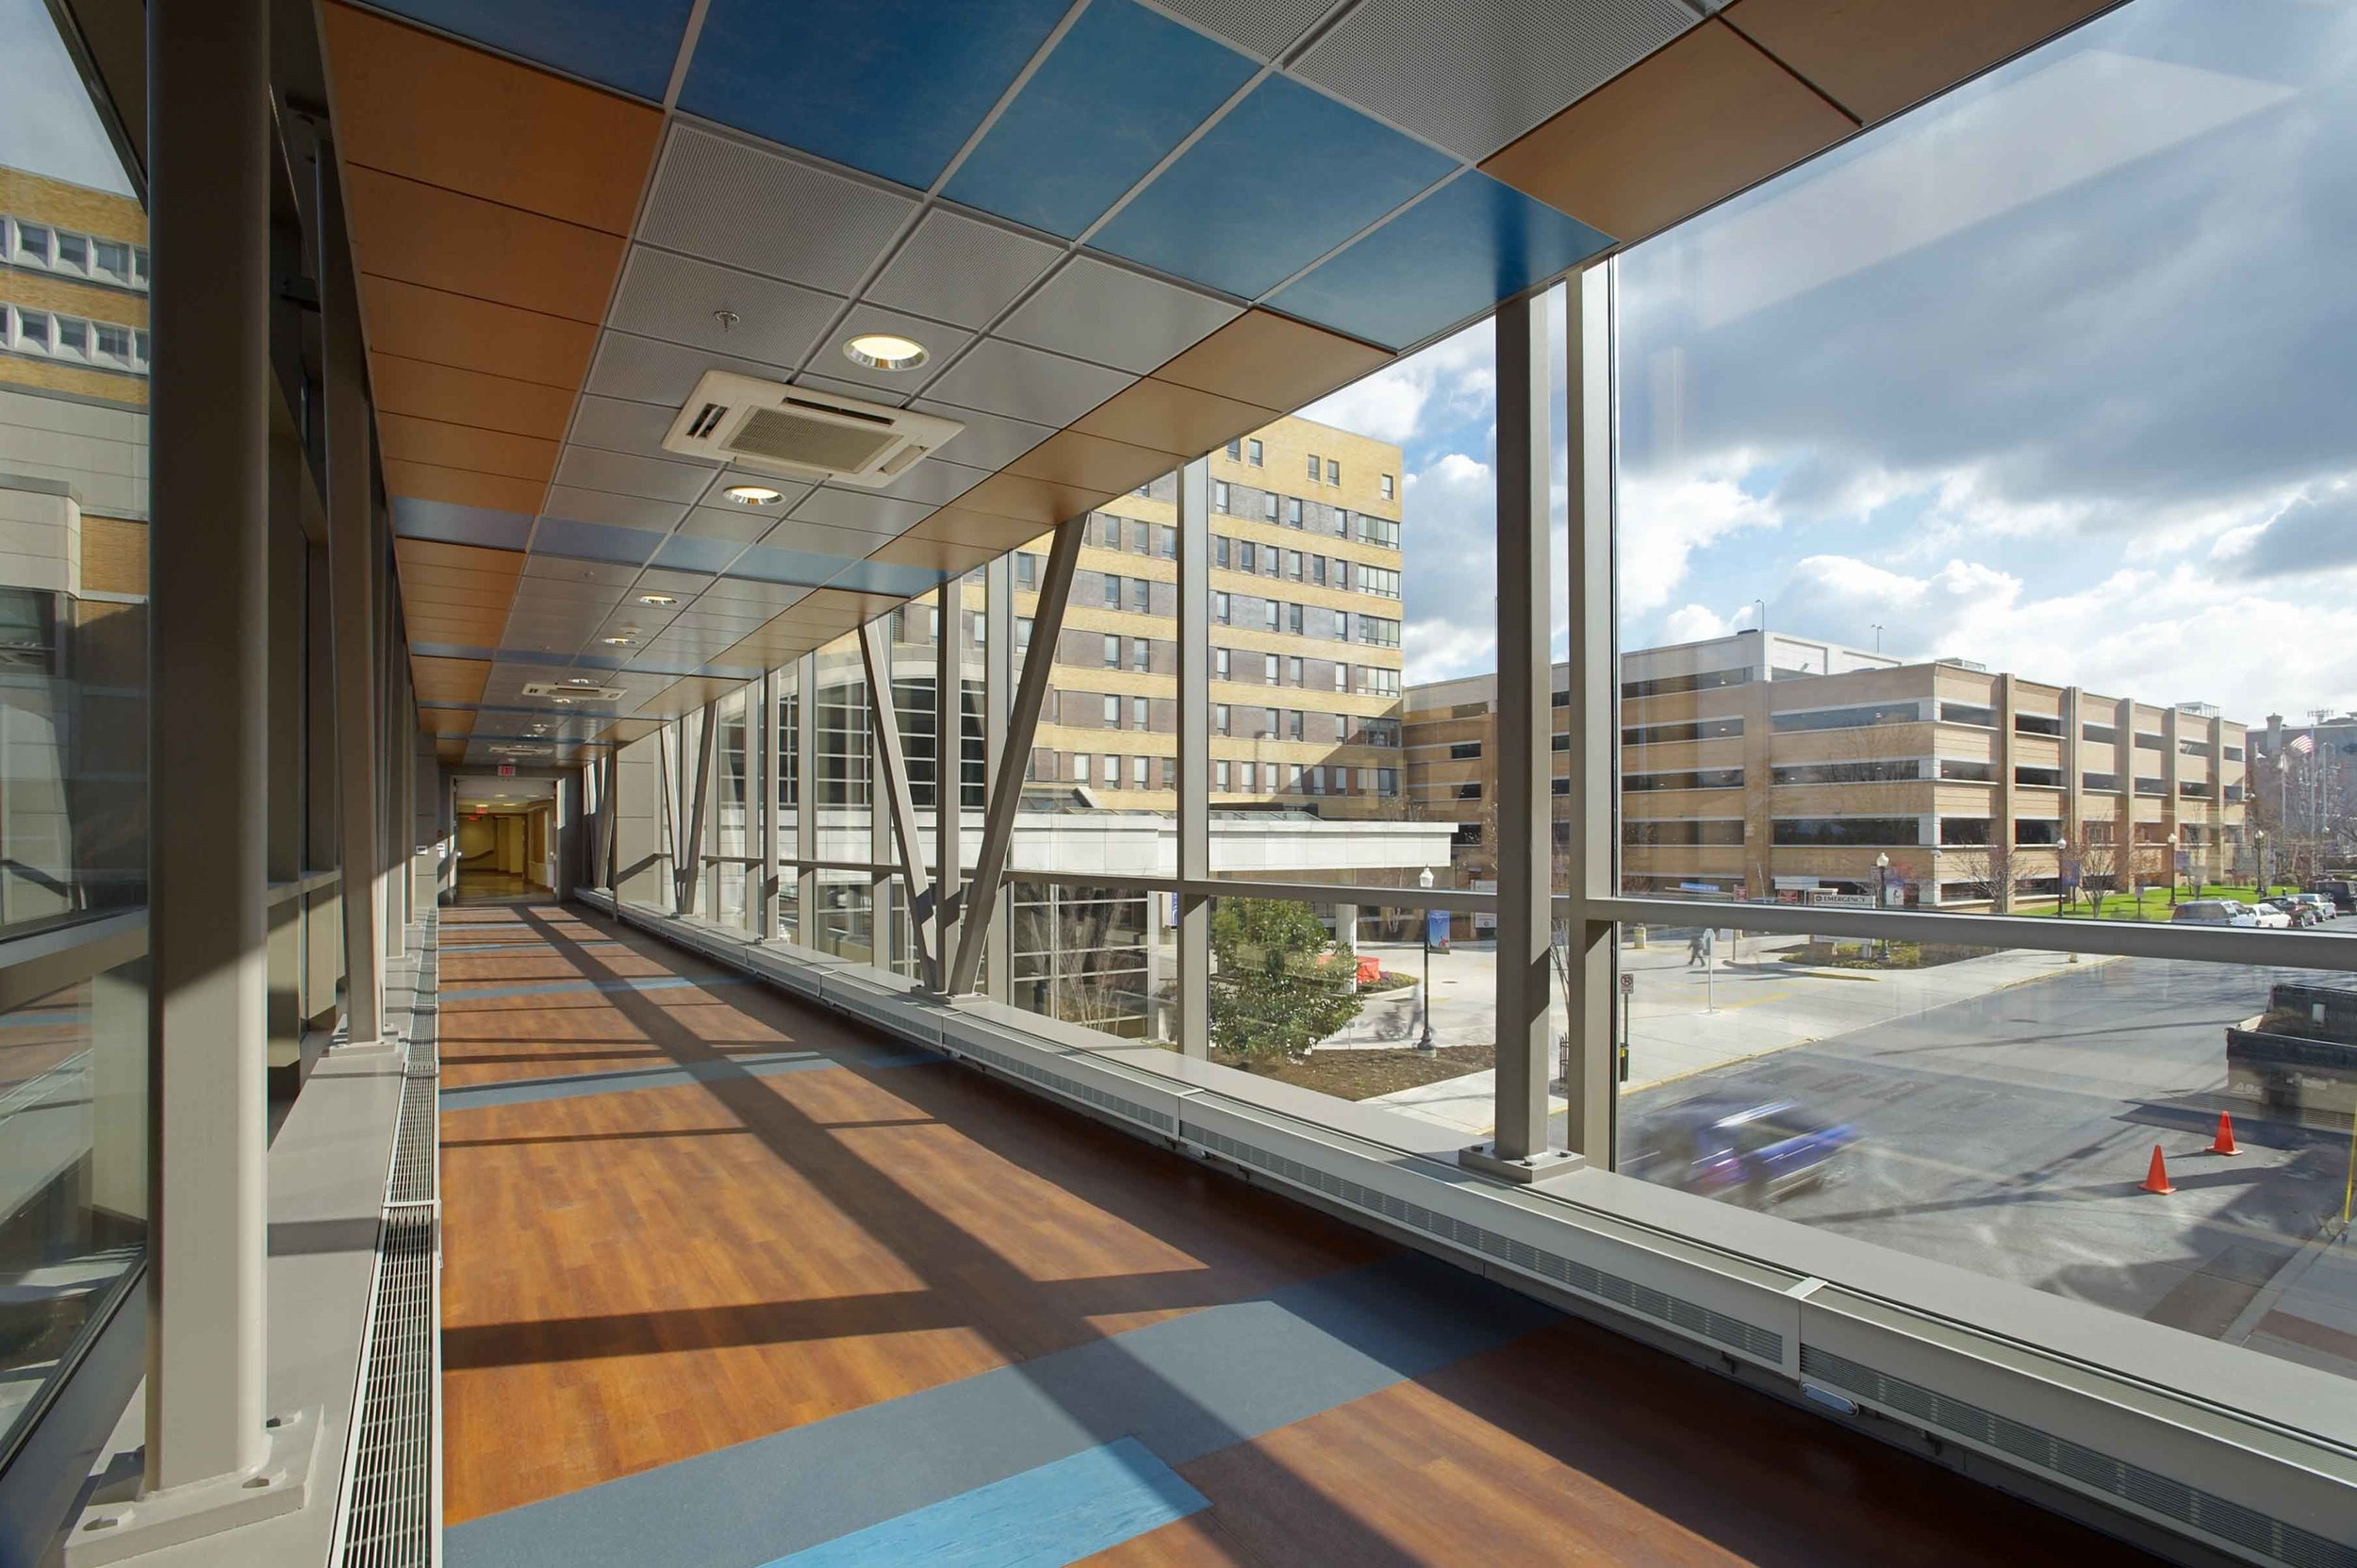 Lancaster General Health (Penn Medicine) /Lancaster, PA - Lancaster's biggest employer trusts Cornerstone Design-Architects to provide them with state-of-the-art design and functionality.